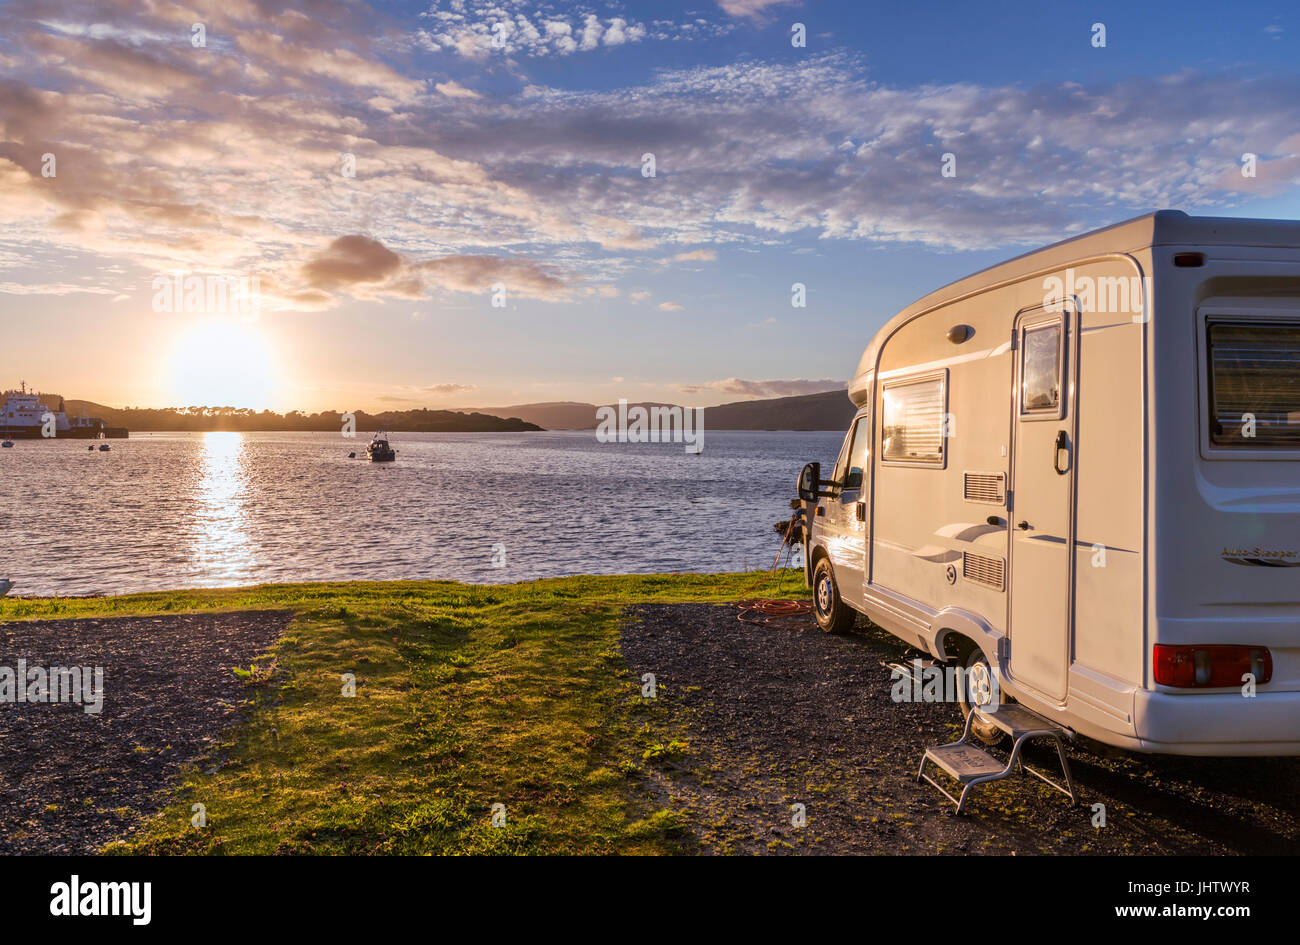 Campervan (Motorhome) at a campsite in Craignure at sunset, Isle of Mull, Argyll and Bute, Scotland, UK - Stock Image